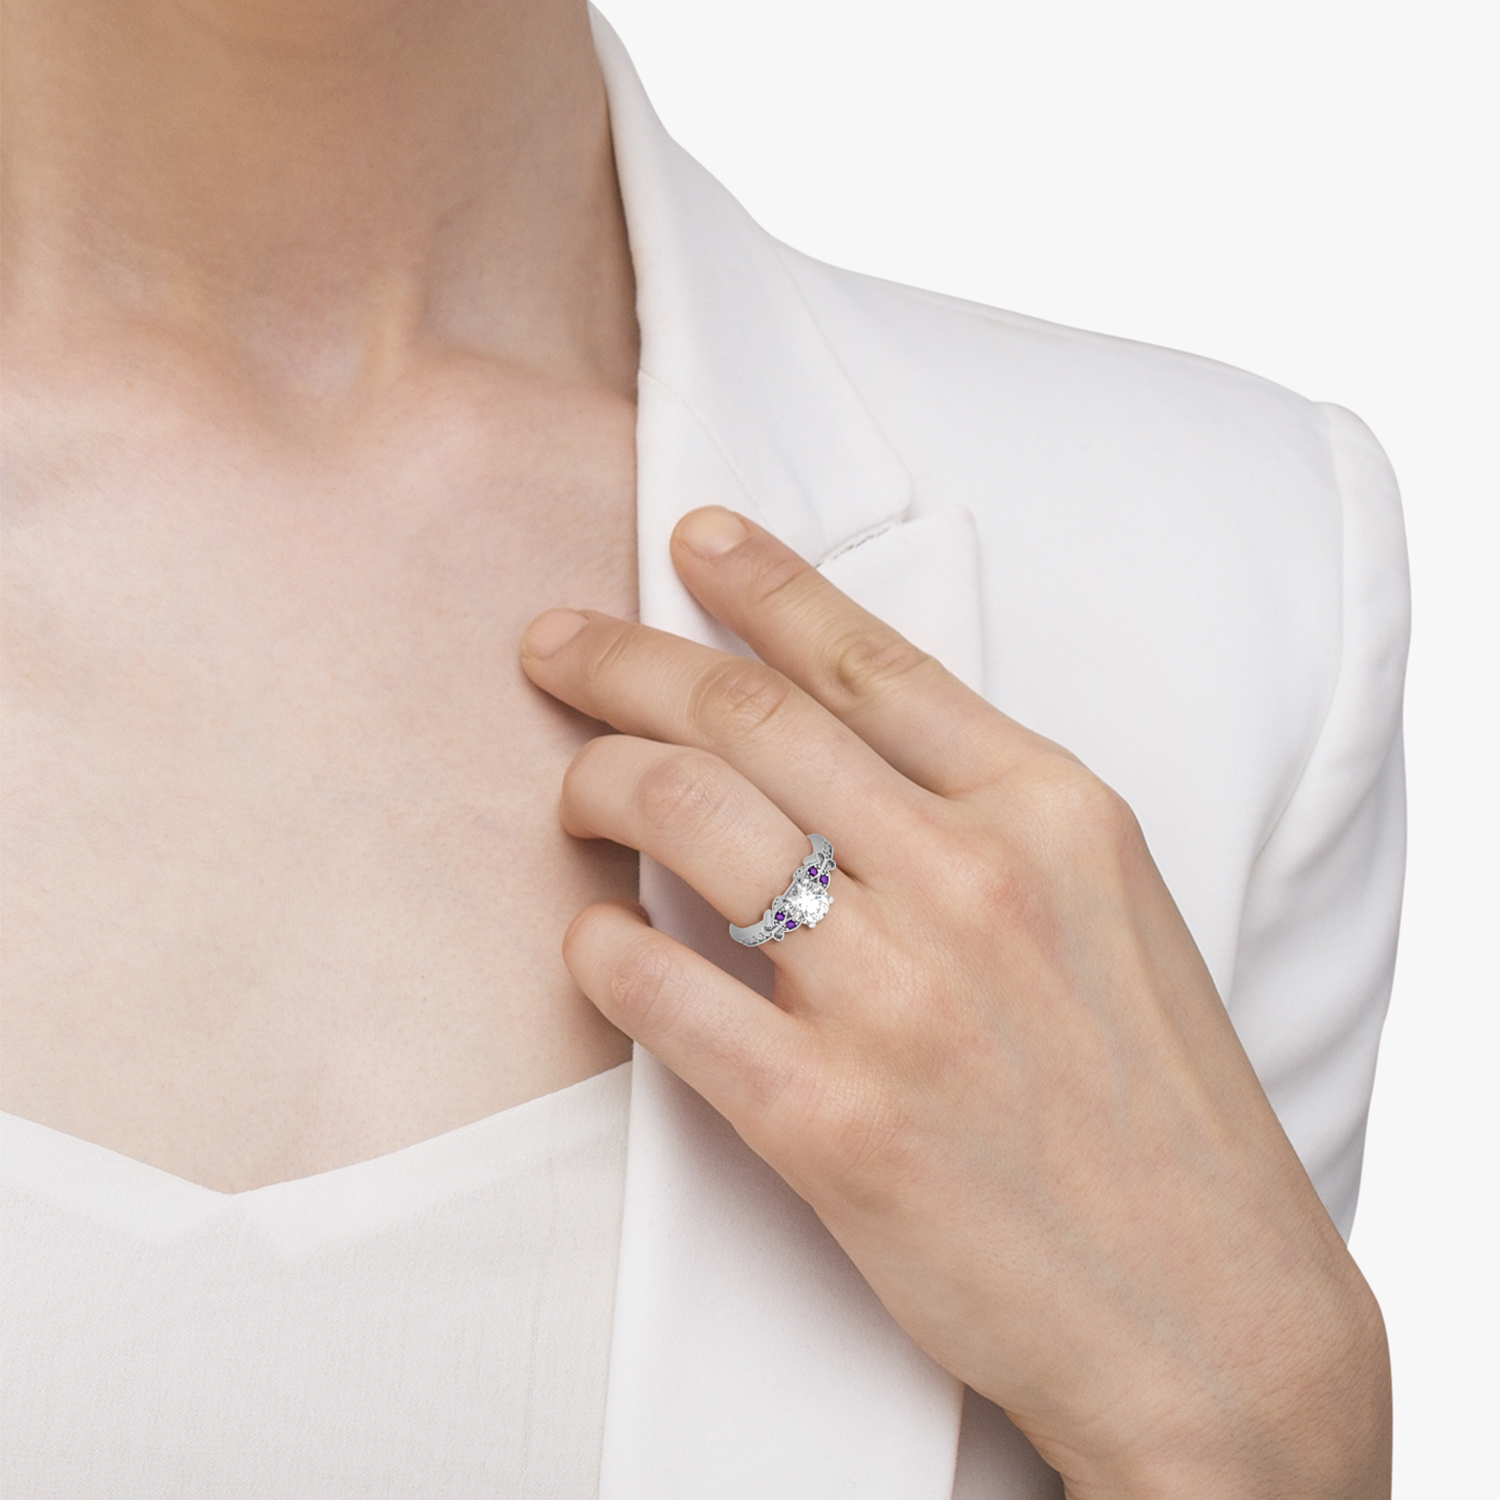 butterfly diamond amethyst engagement ring 14k white gold - Butterfly Wedding Rings